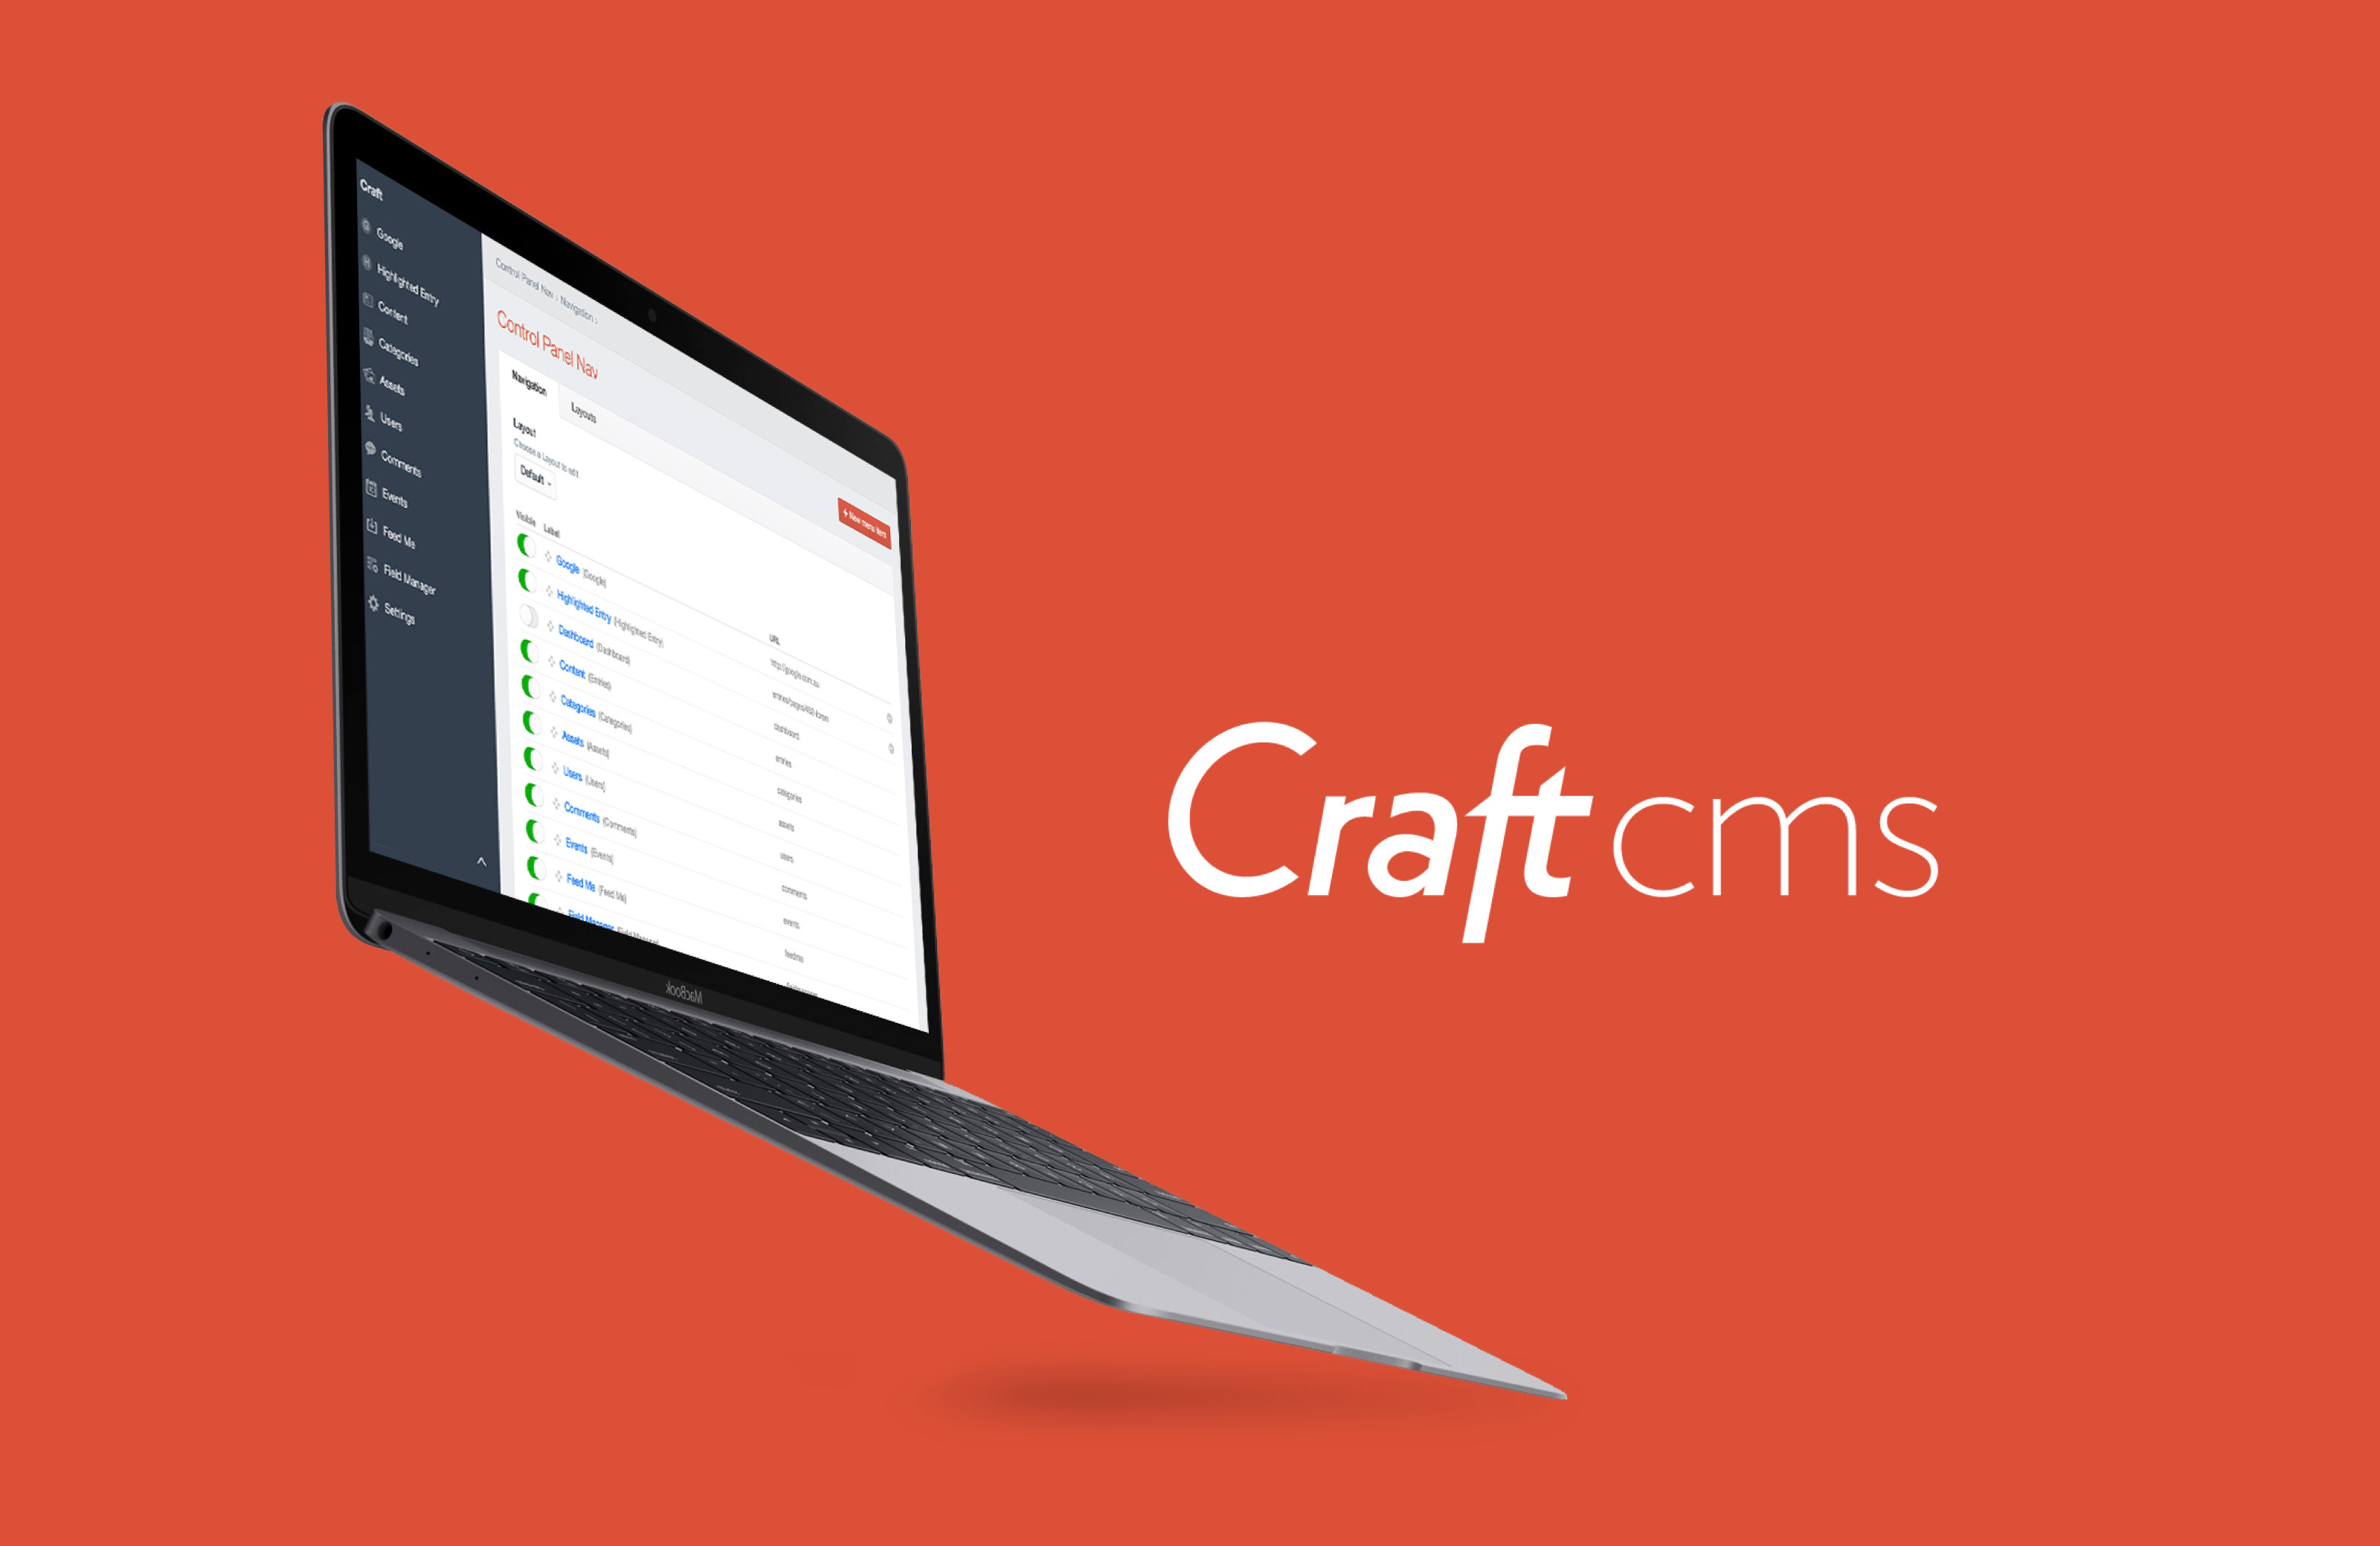 Craft Cms Light